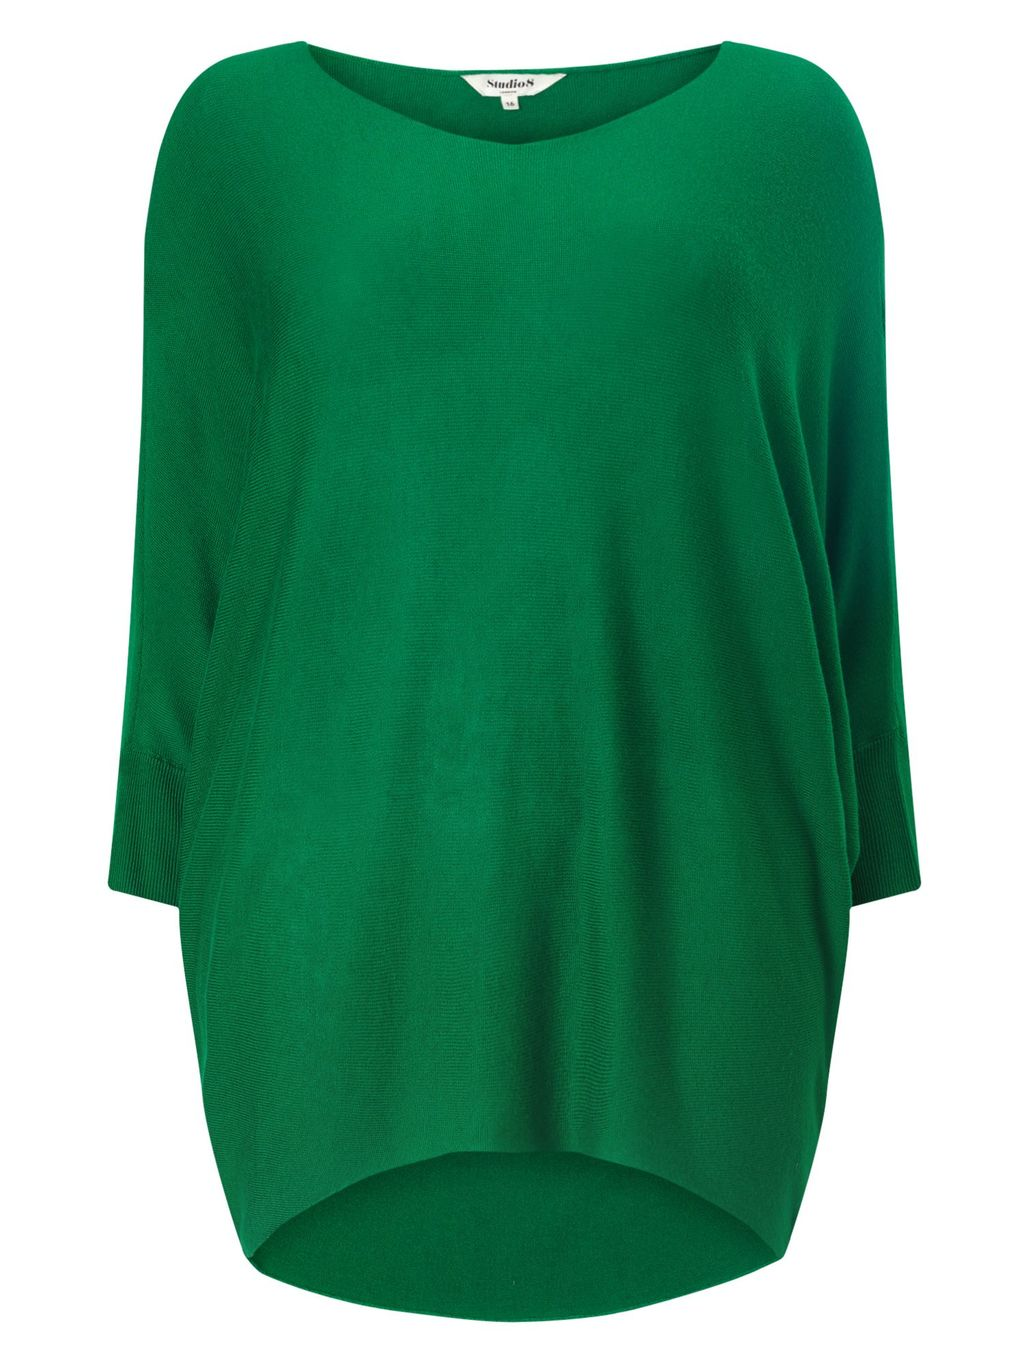 Beth Batwing Jumper, Emerald - pattern: plain; length: below the bottom; style: standard; predominant colour: emerald green; occasions: casual; fit: loose; neckline: crew; sleeve length: long sleeve; sleeve style: standard; pattern type: fabric; texture group: jersey - stretchy/drapey; fibres: viscose/rayon - mix; season: s/s 2016; wardrobe: highlight